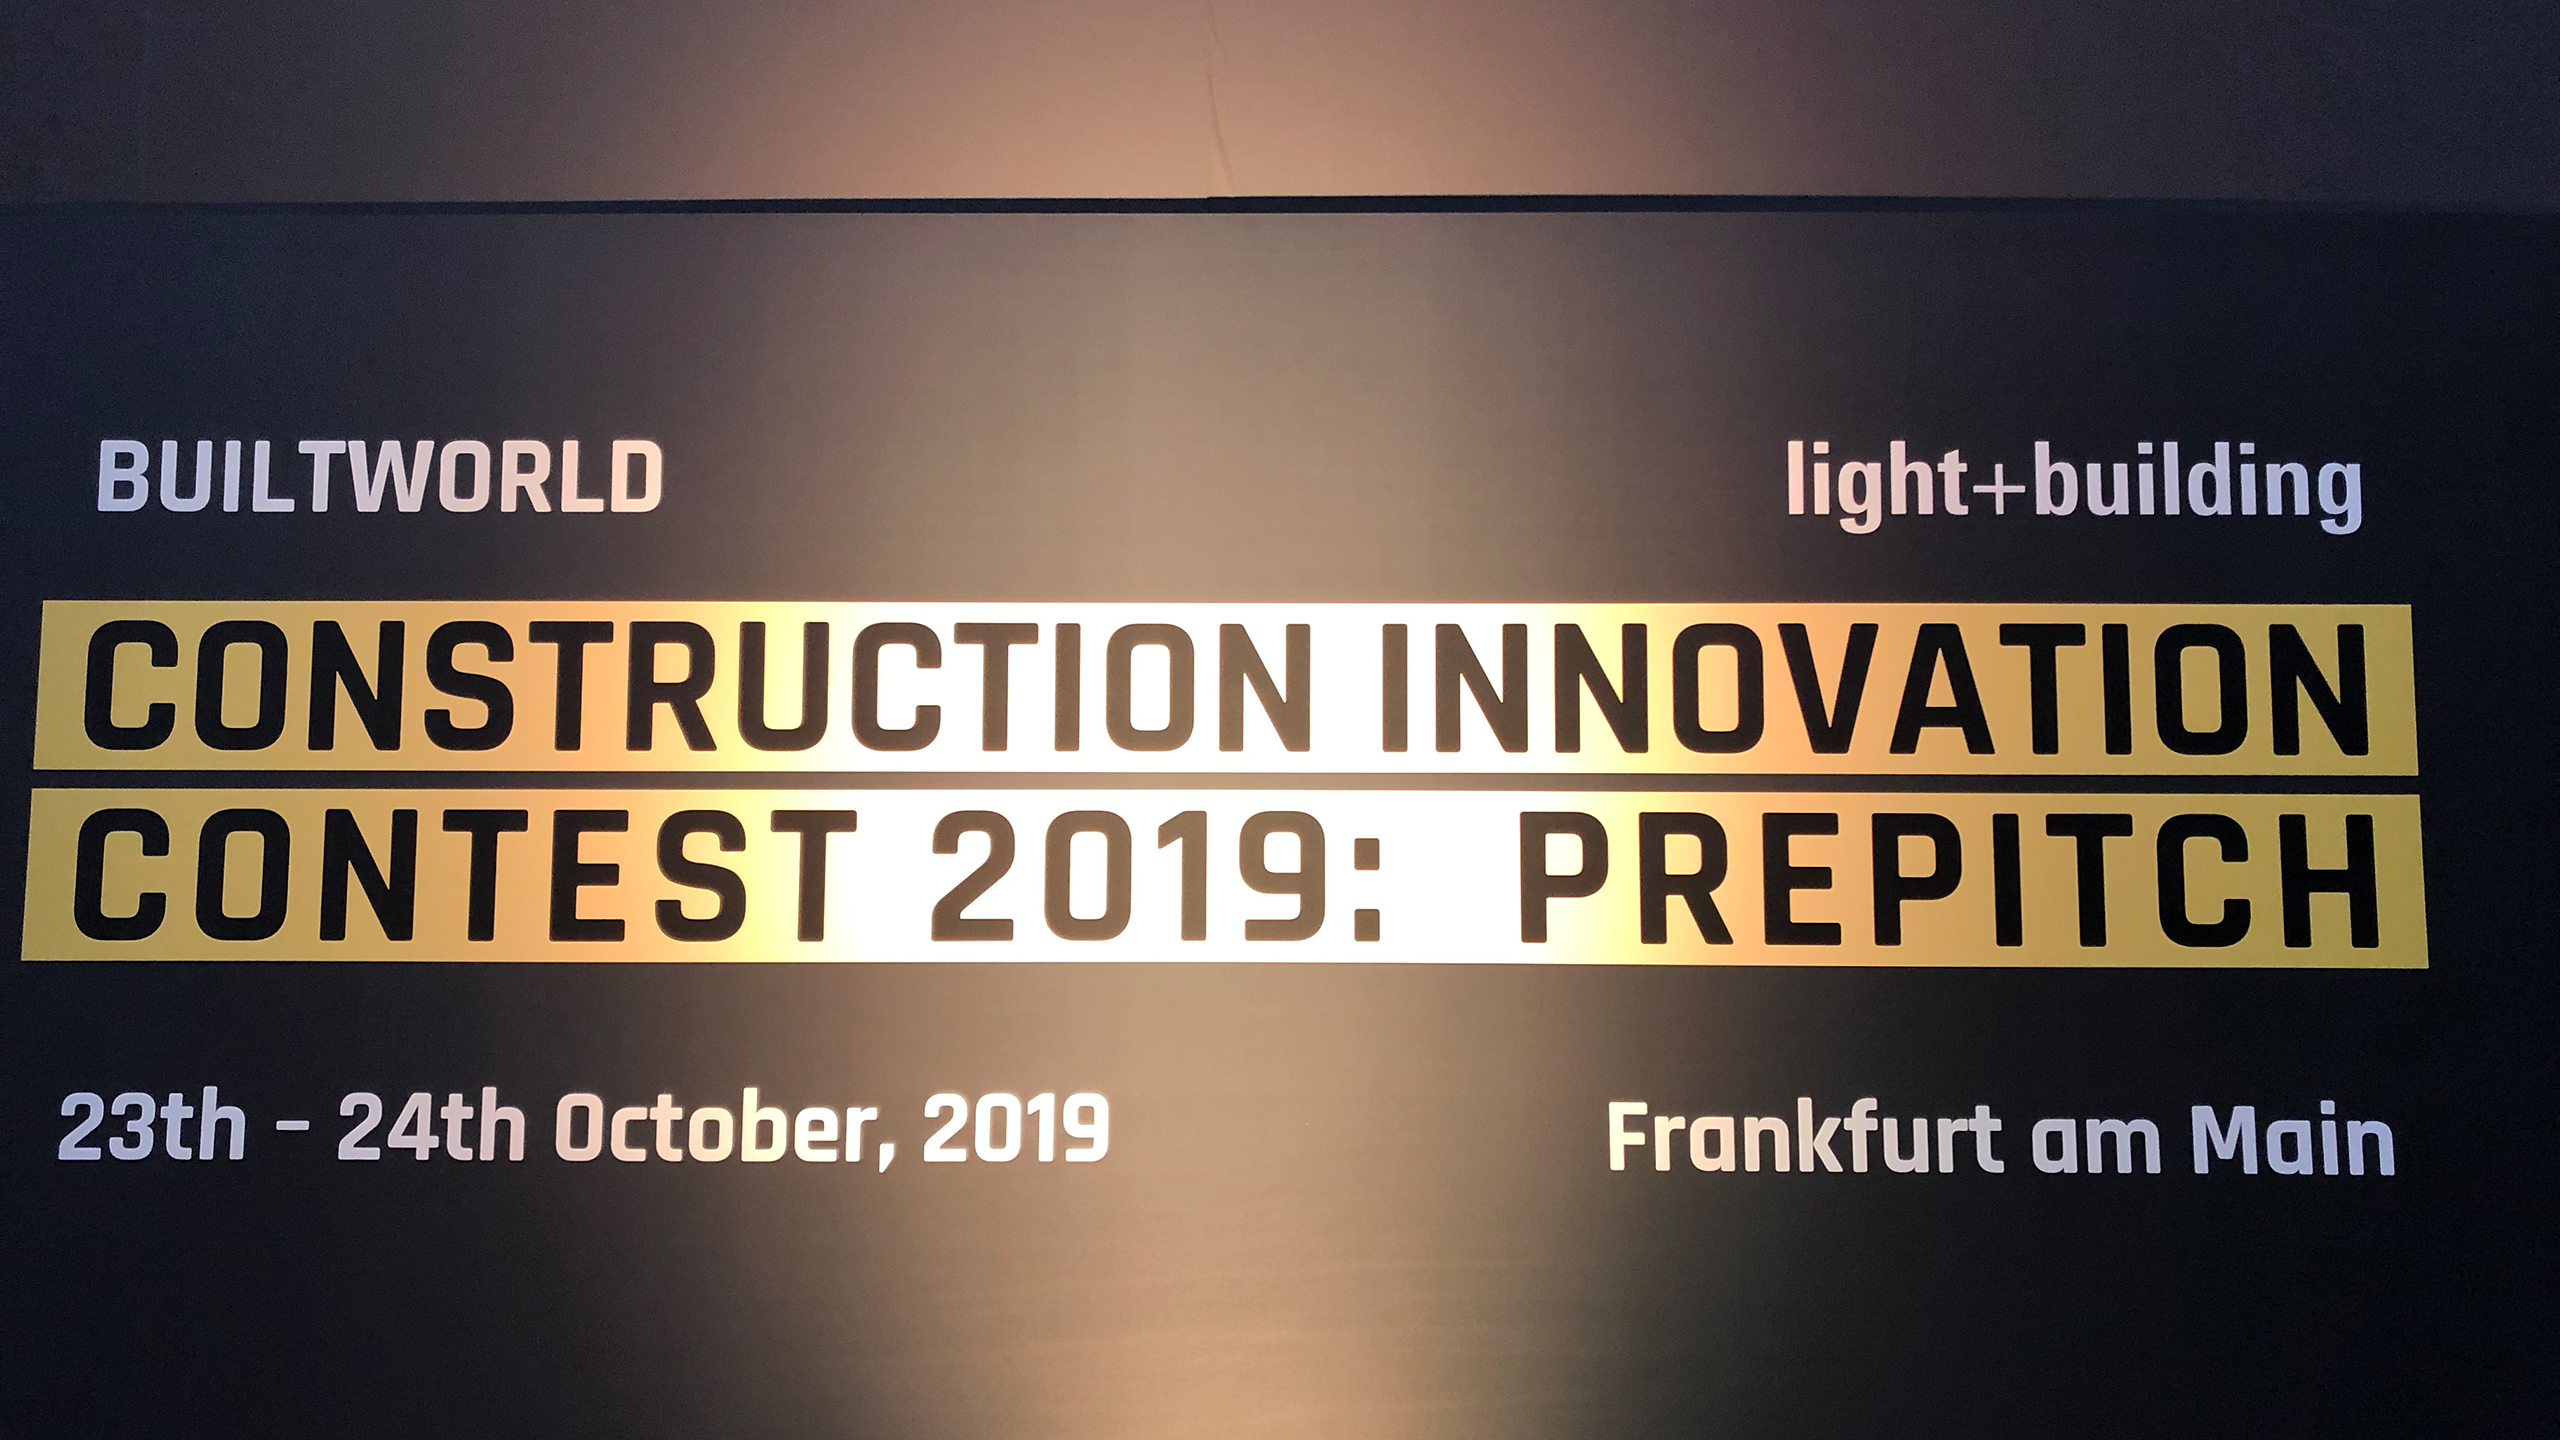 In hall 9.0 of Messe Frankfurt, the two-day prepitch of the construction and real estate industries on 23 and 24 October 2019 brought 25 of the original 350 applicants into the next competition round –  the finals at Light + Building in March 2020.  (Source: Messe Frankfurt / EBU 62 2019)